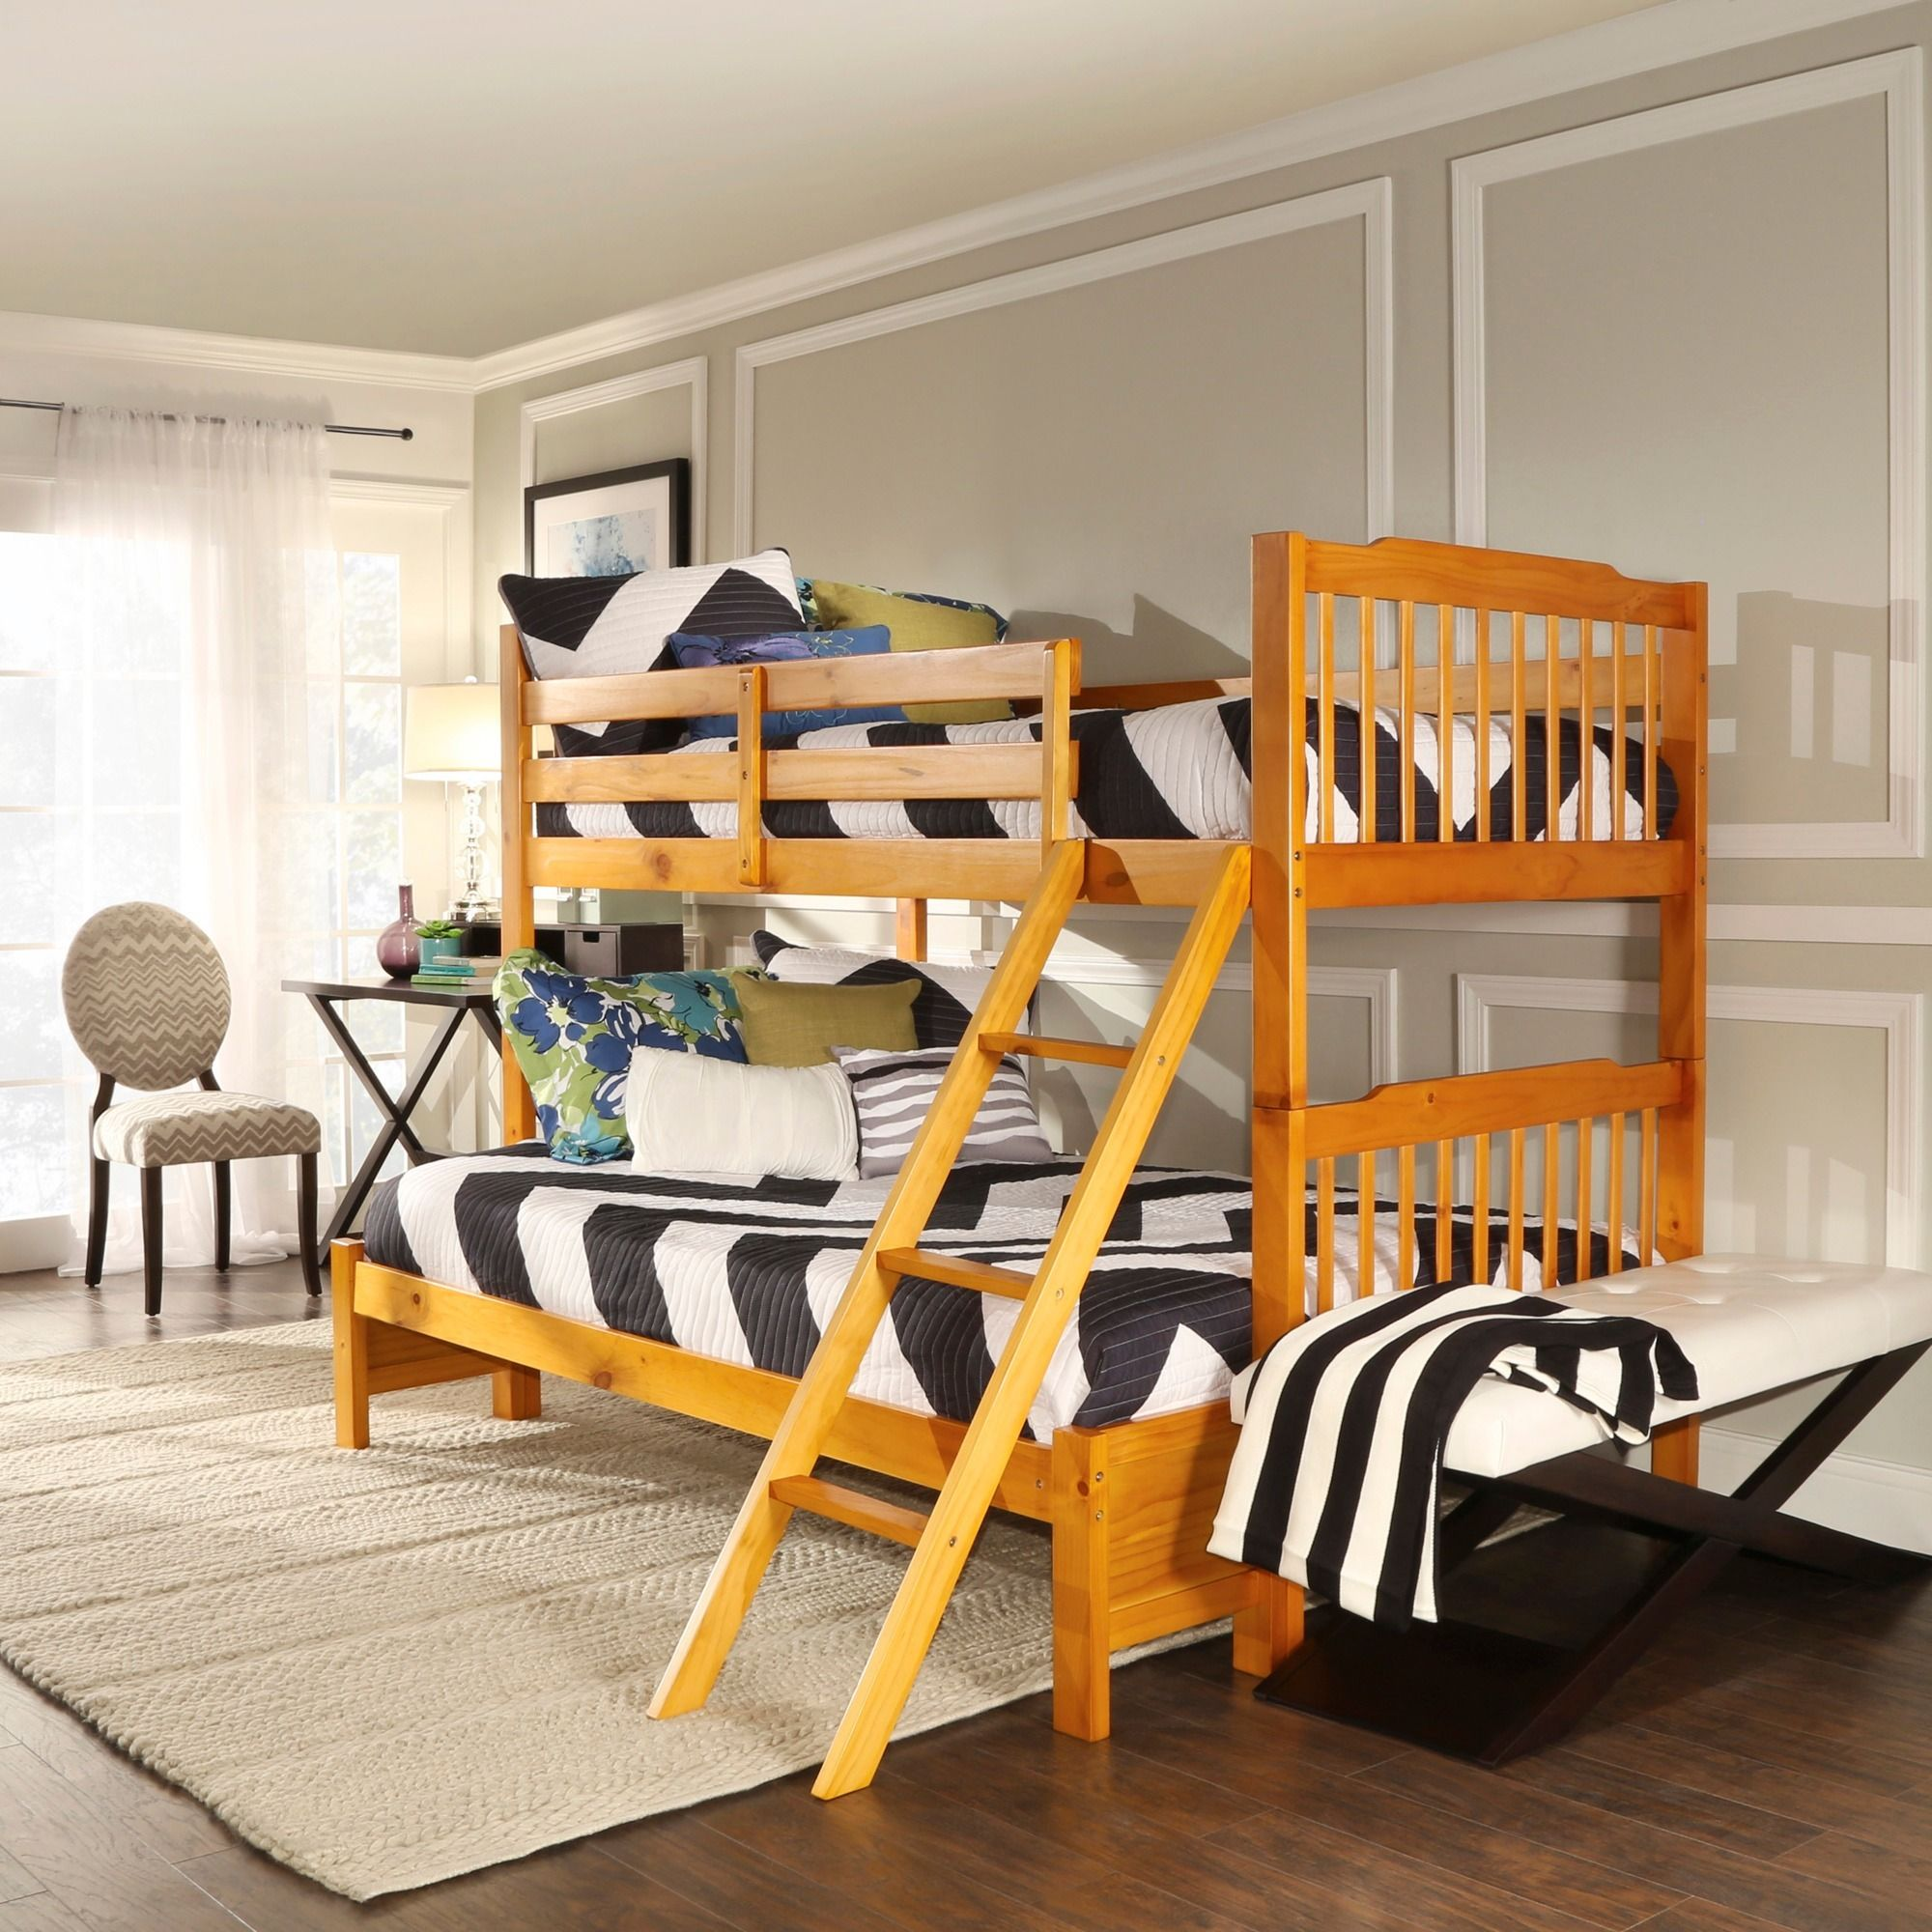 This Bunk Bed From Simone Features A Traditional Slat Design